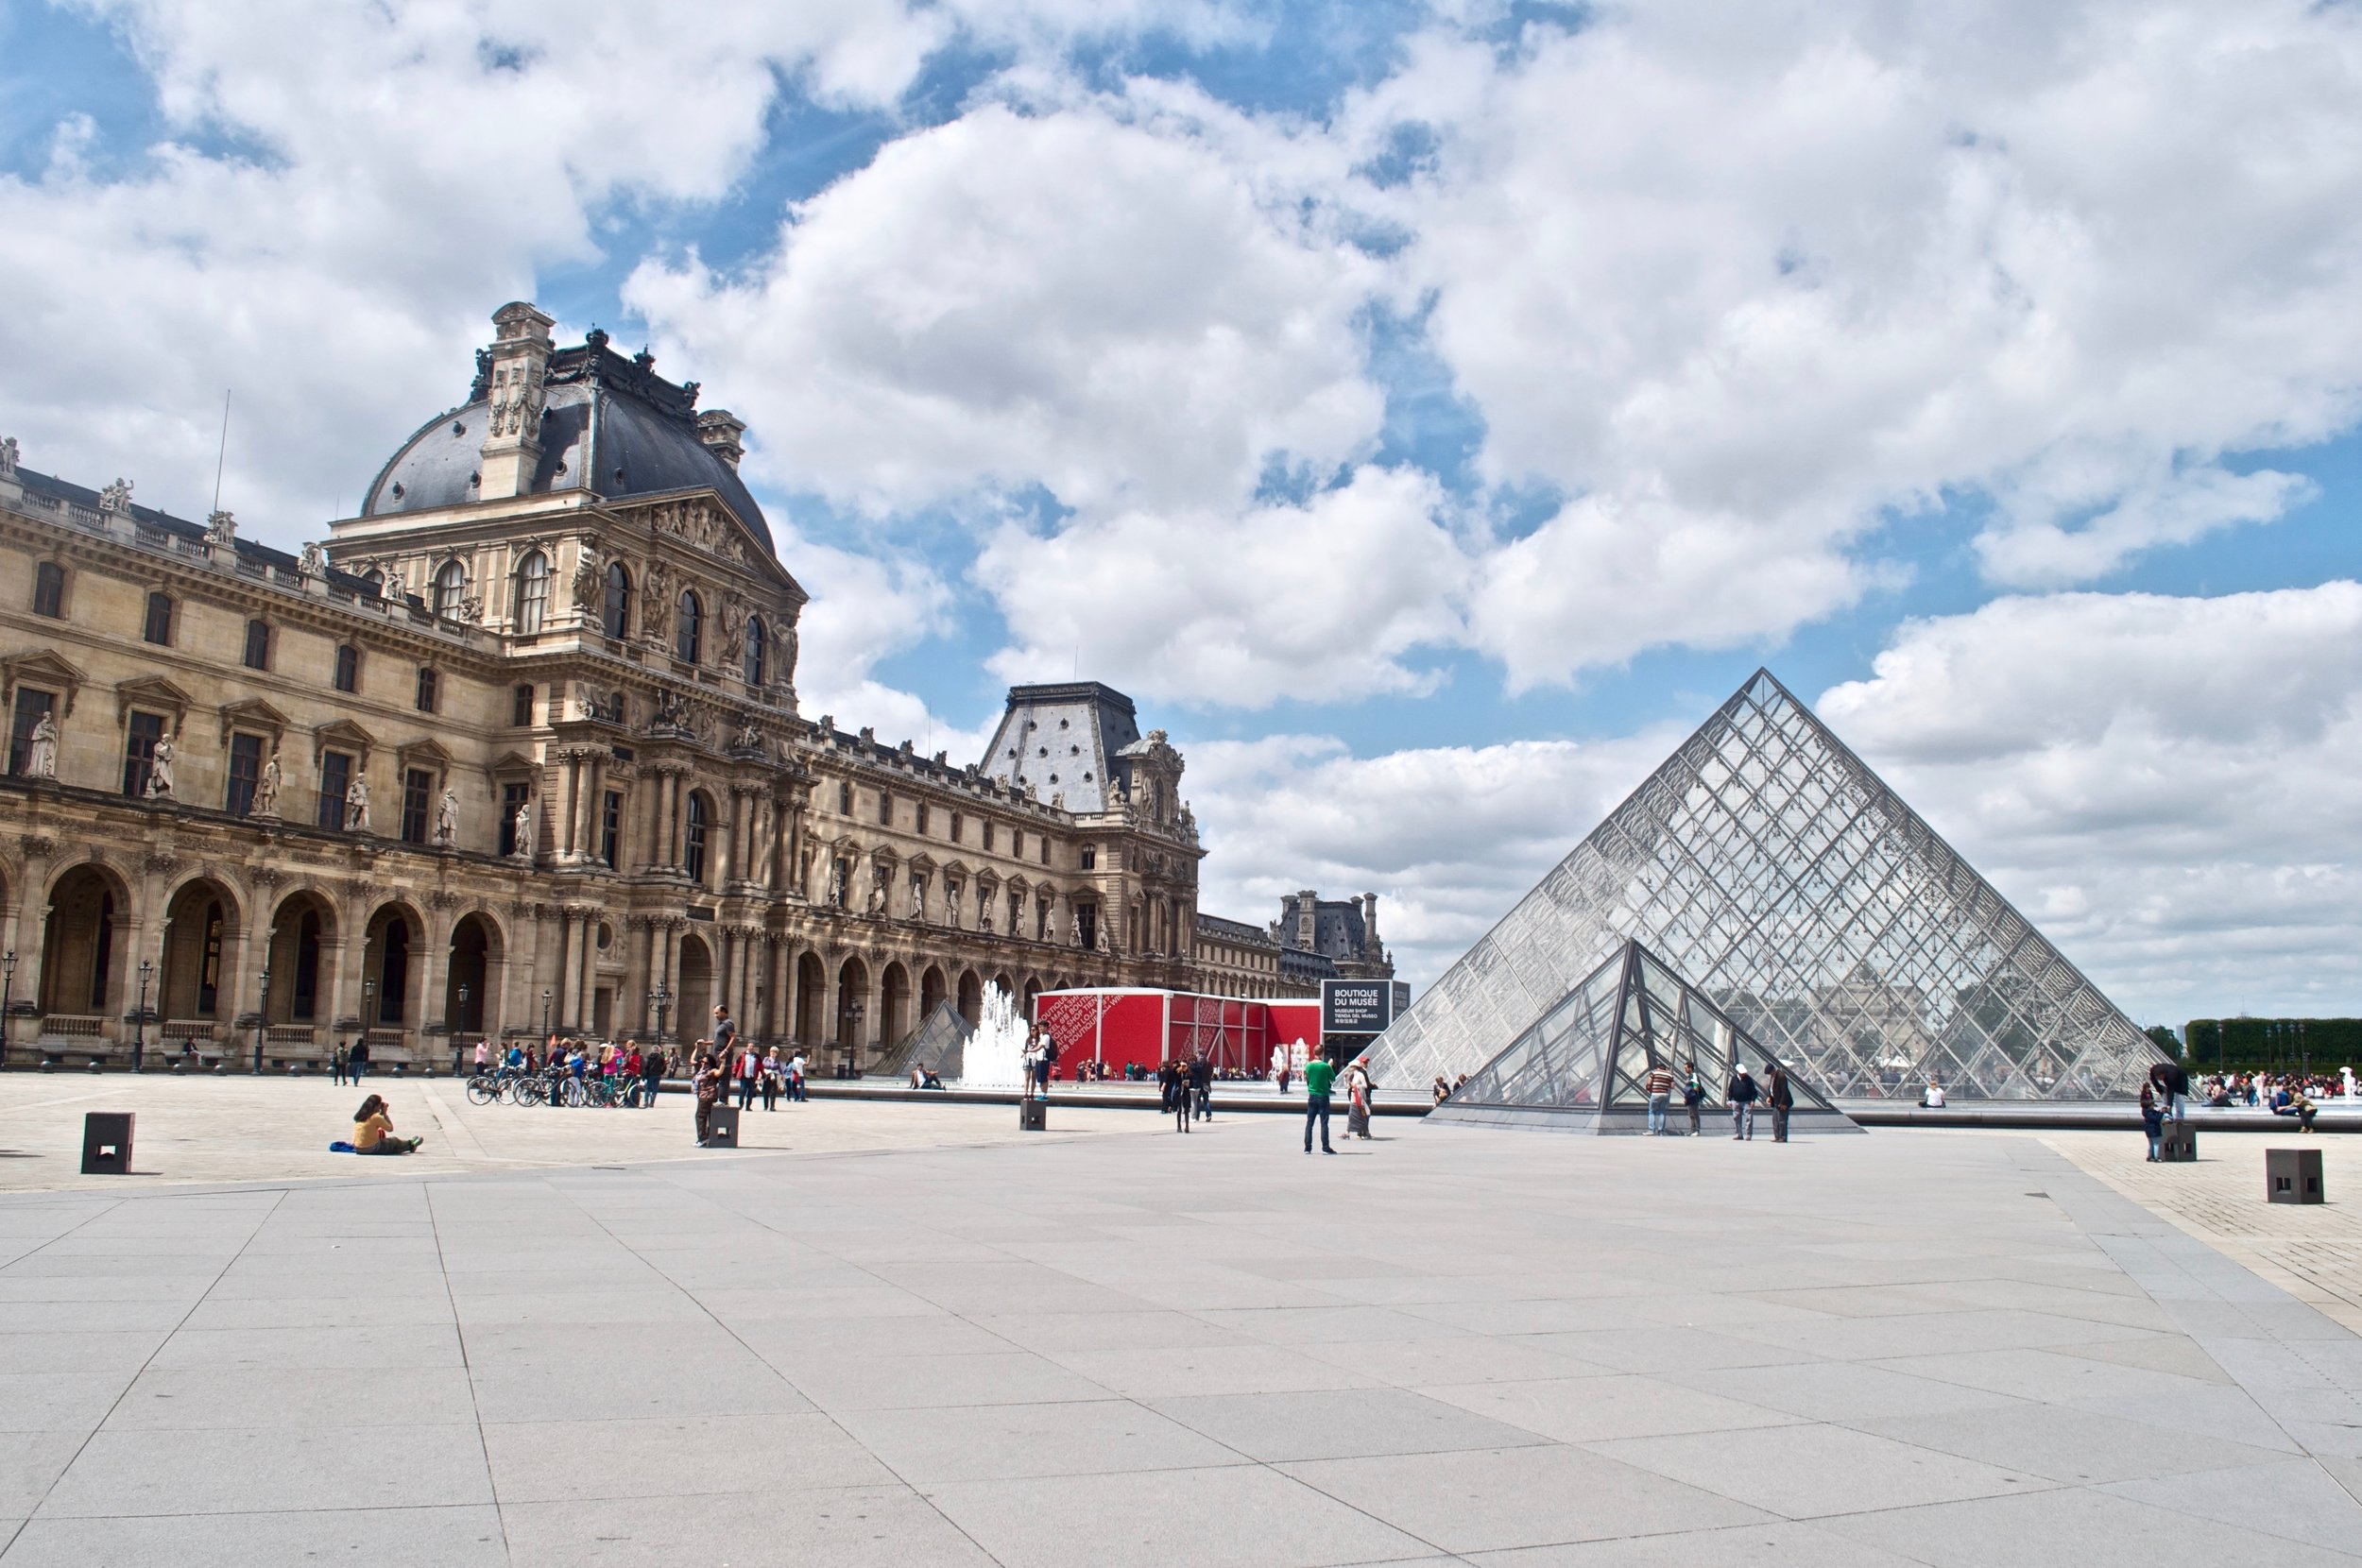 Outside of the Louvre, you enter in through the glass pyramid in the center of the square